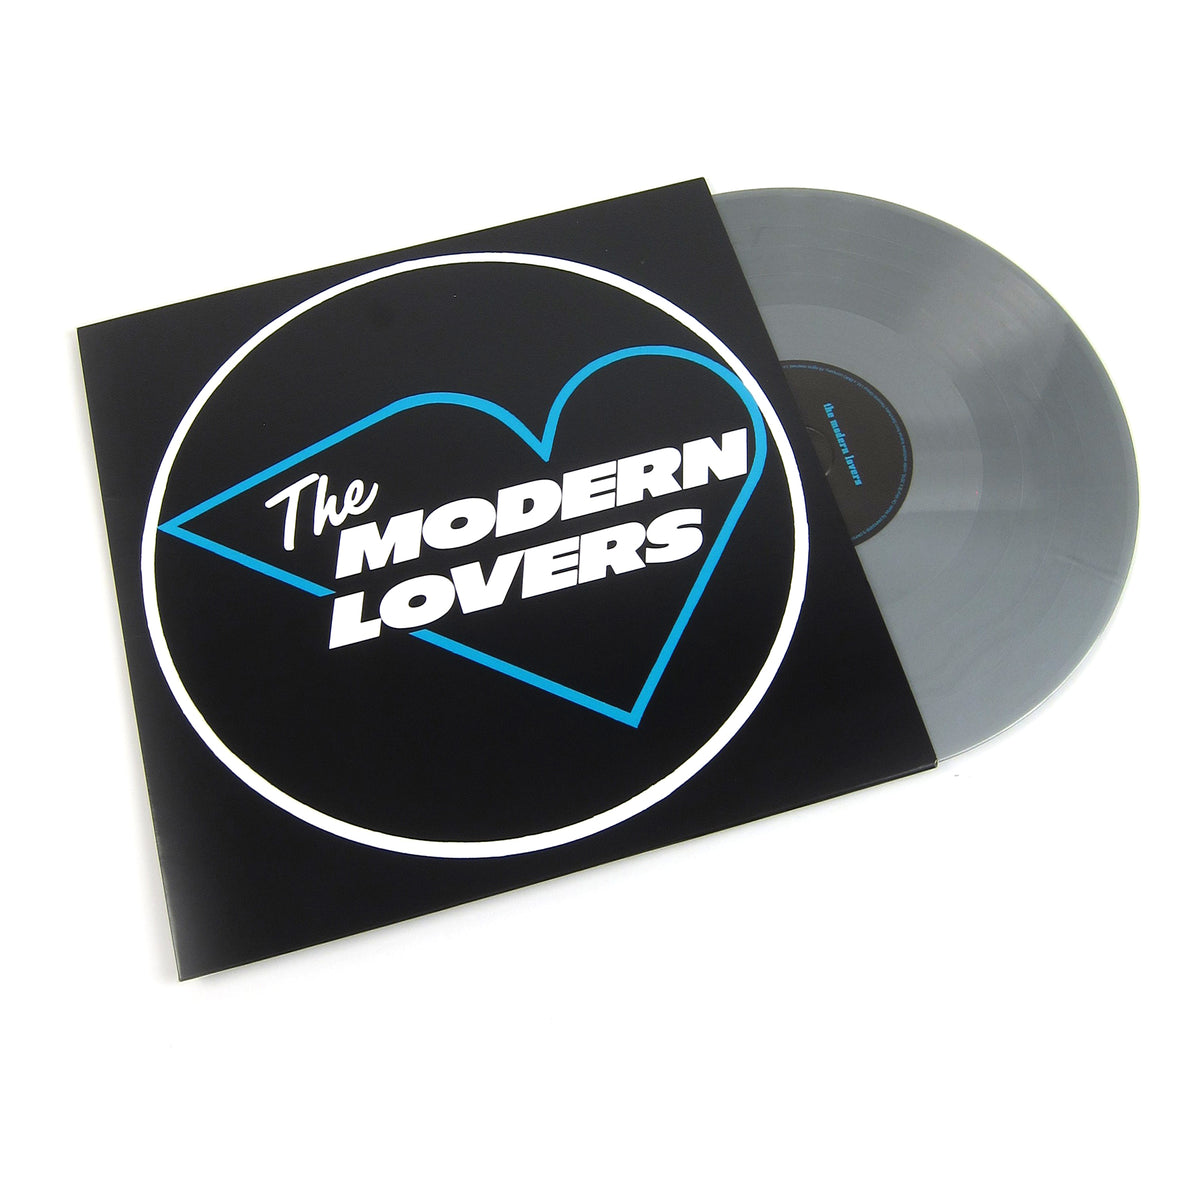 The Modern Lovers: The Modern Lovers (Music On Vinyl 180g, Colored Vinyl) Vinyl LP